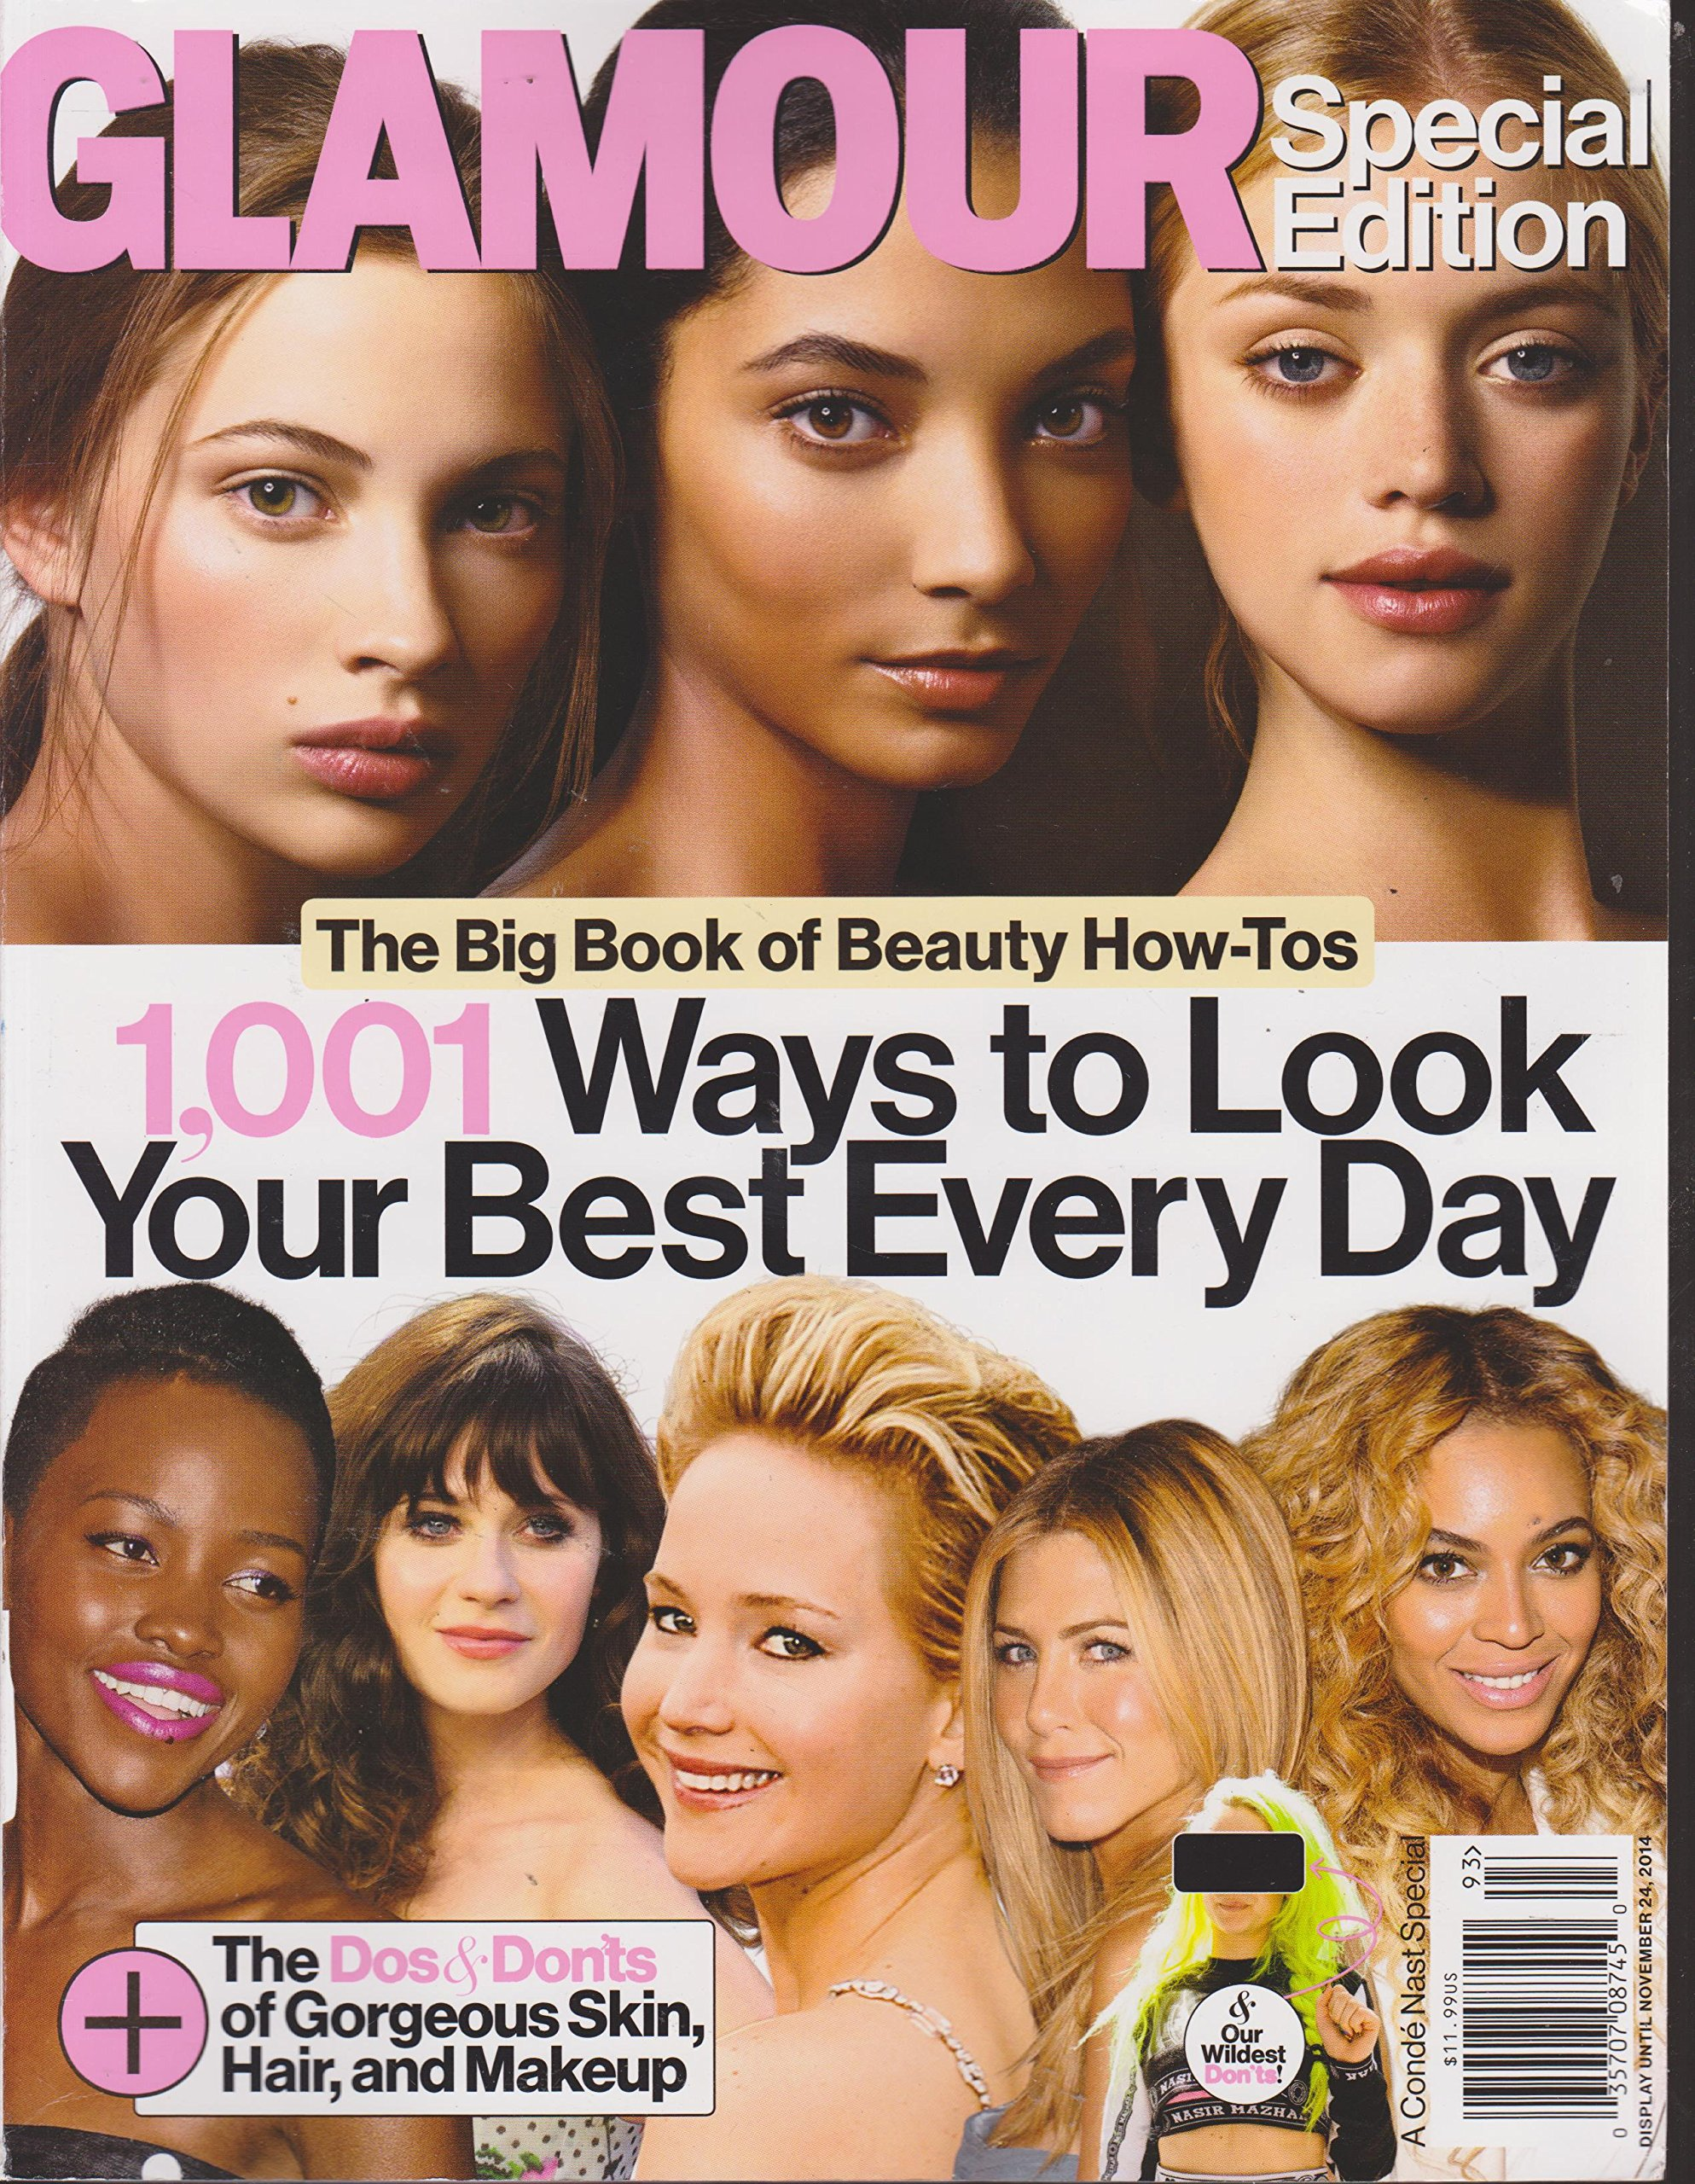 Glamour Special Edition Magazine 2014 1001 Ways to Look Your Best Every Day ebook